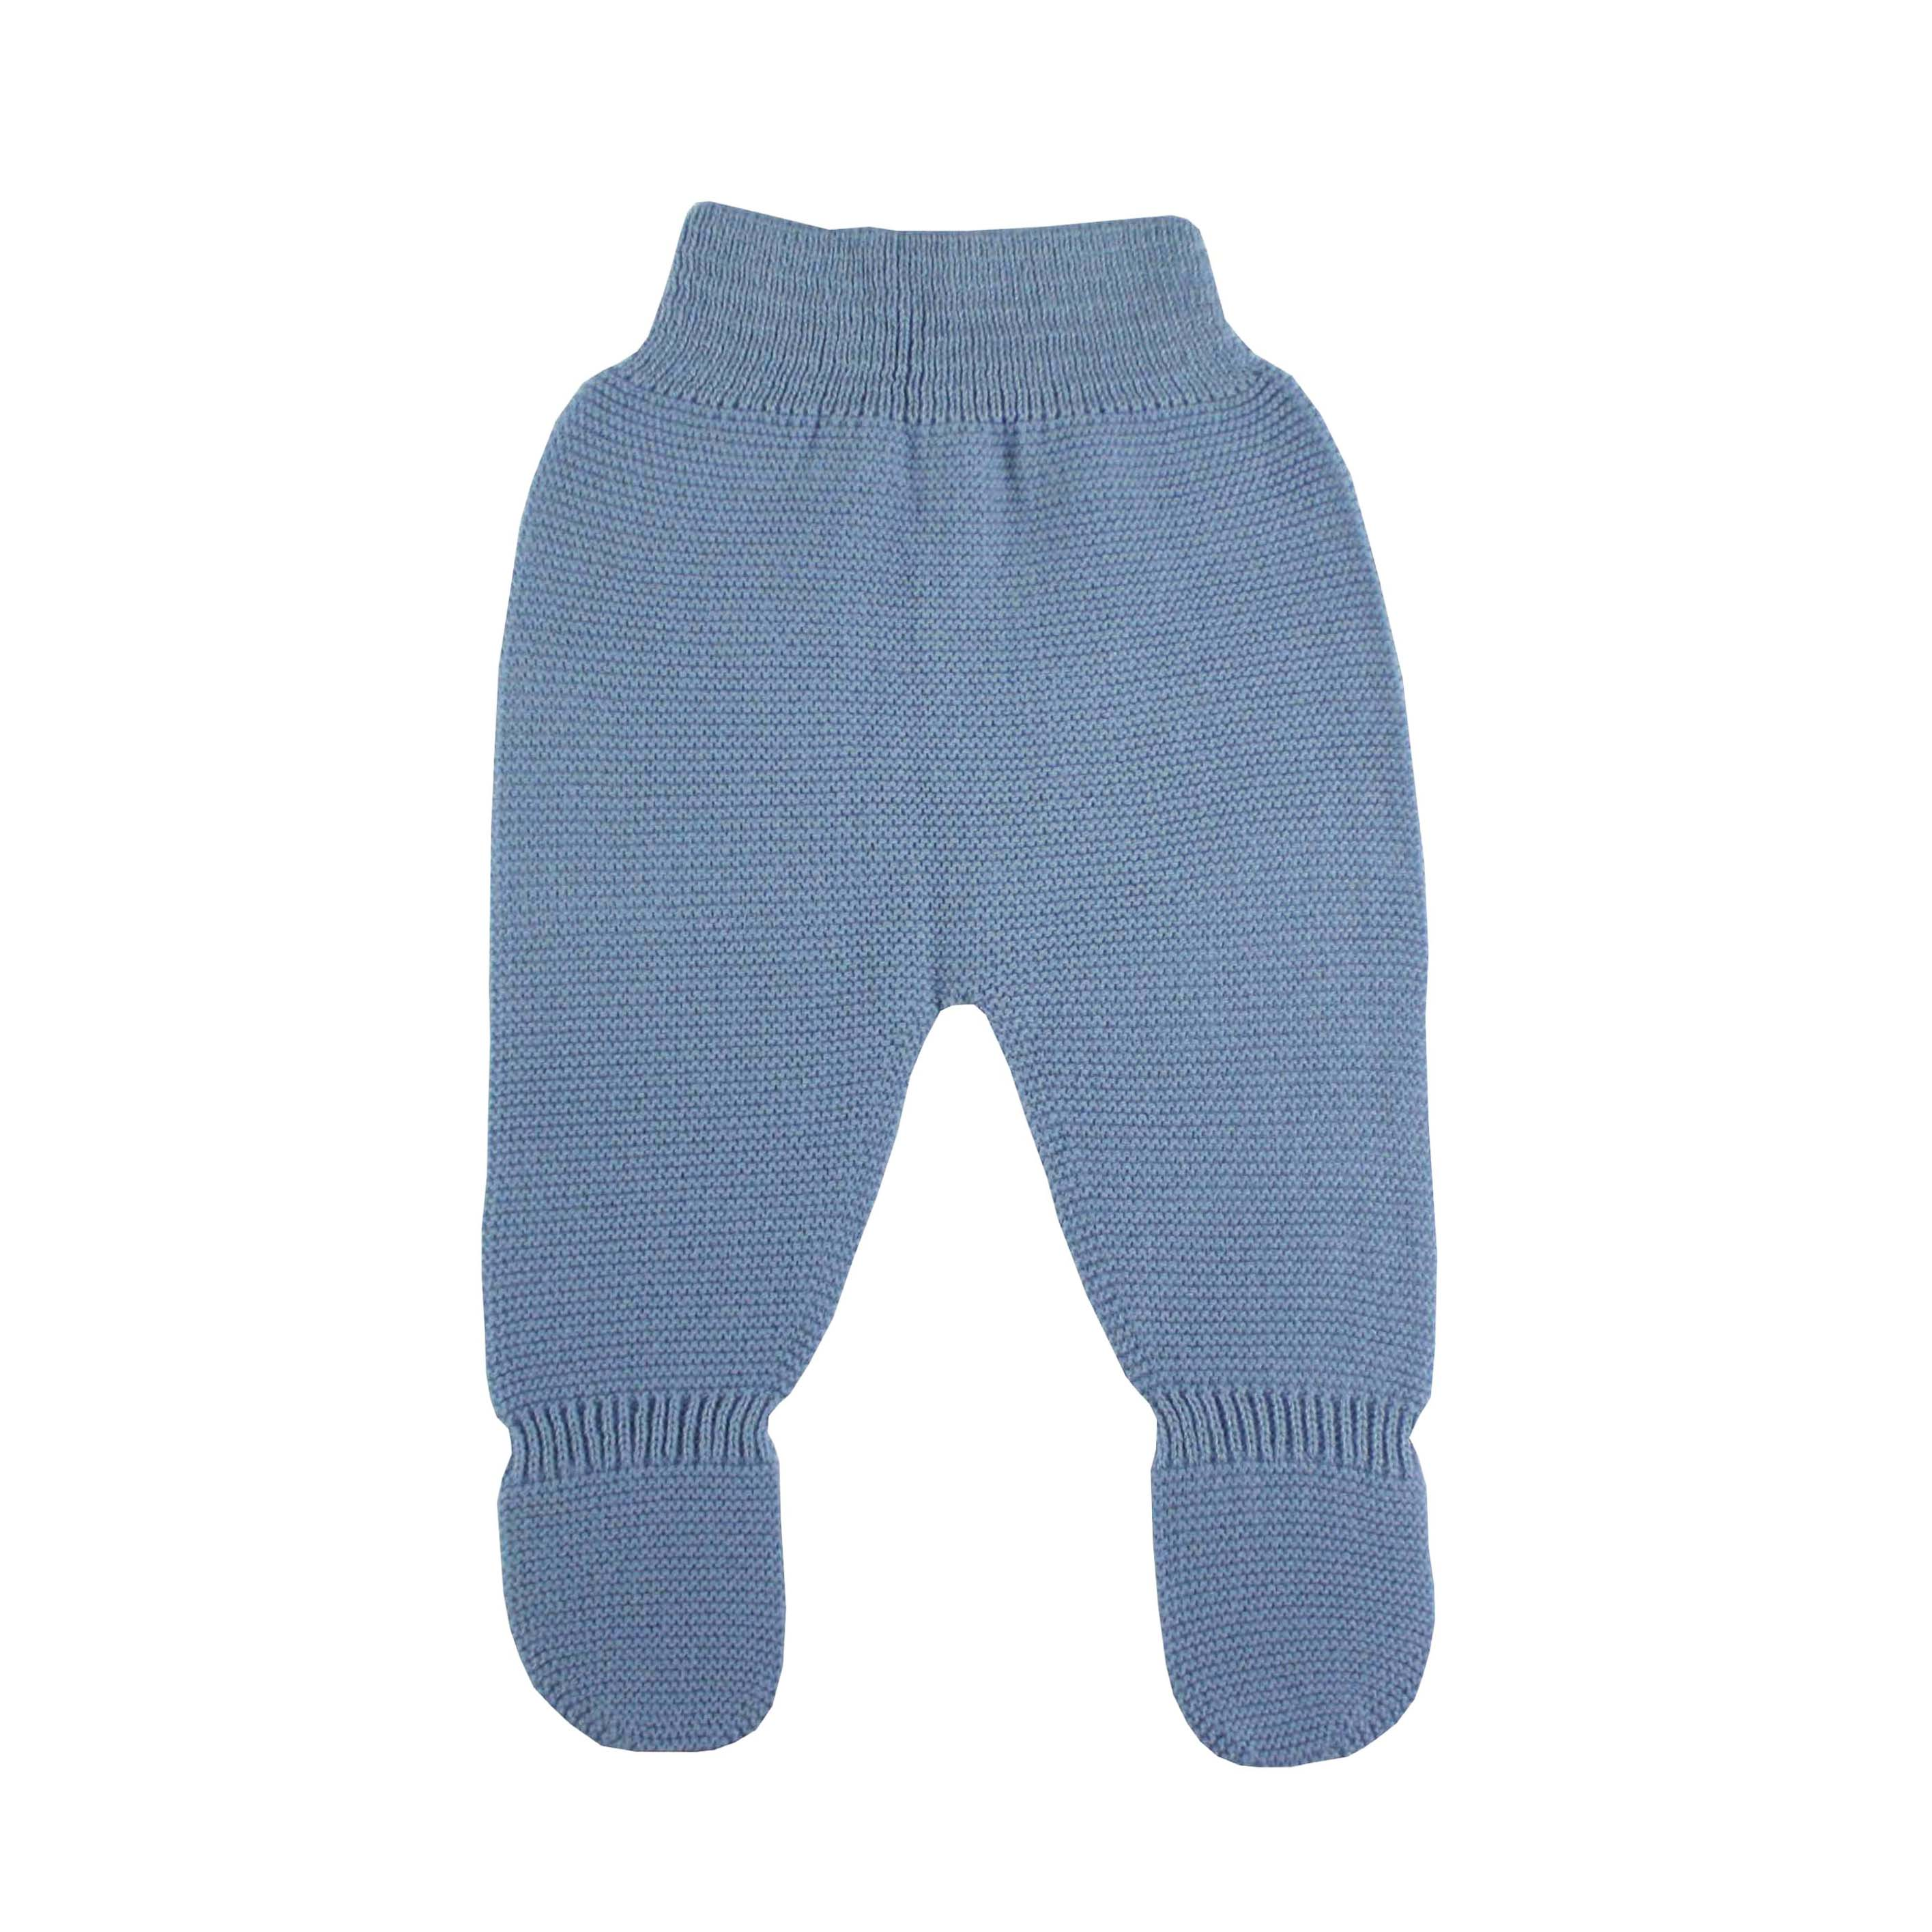 ca98c5398b974 Medium blue thick knit baby leggings